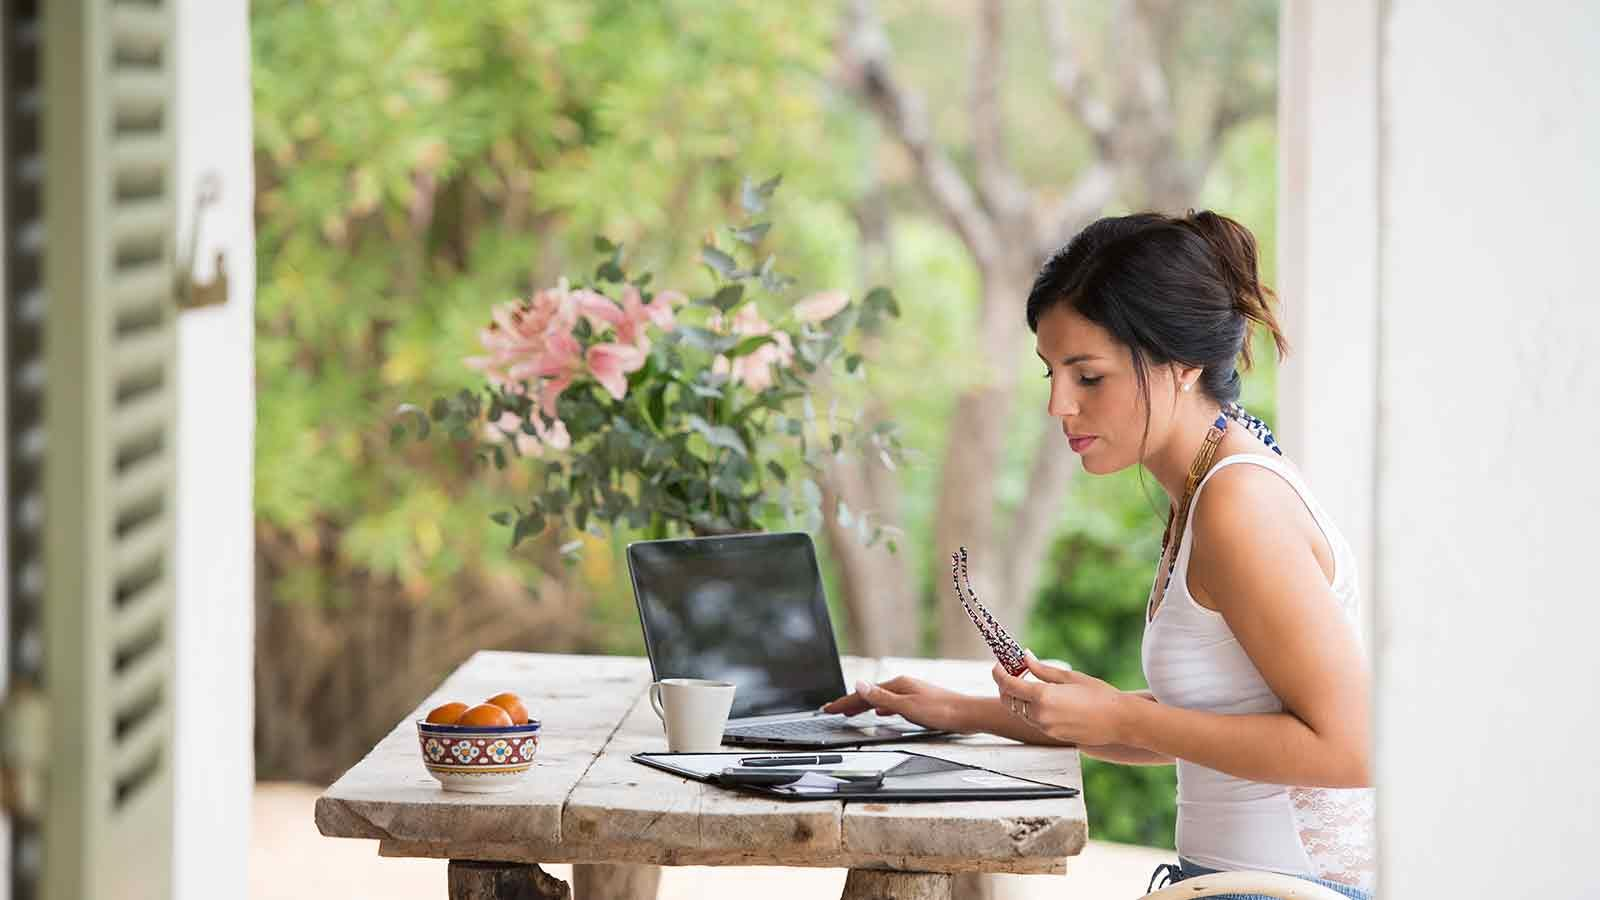 Woman sitting at a picnic table on a patio using her laptop and tablet.